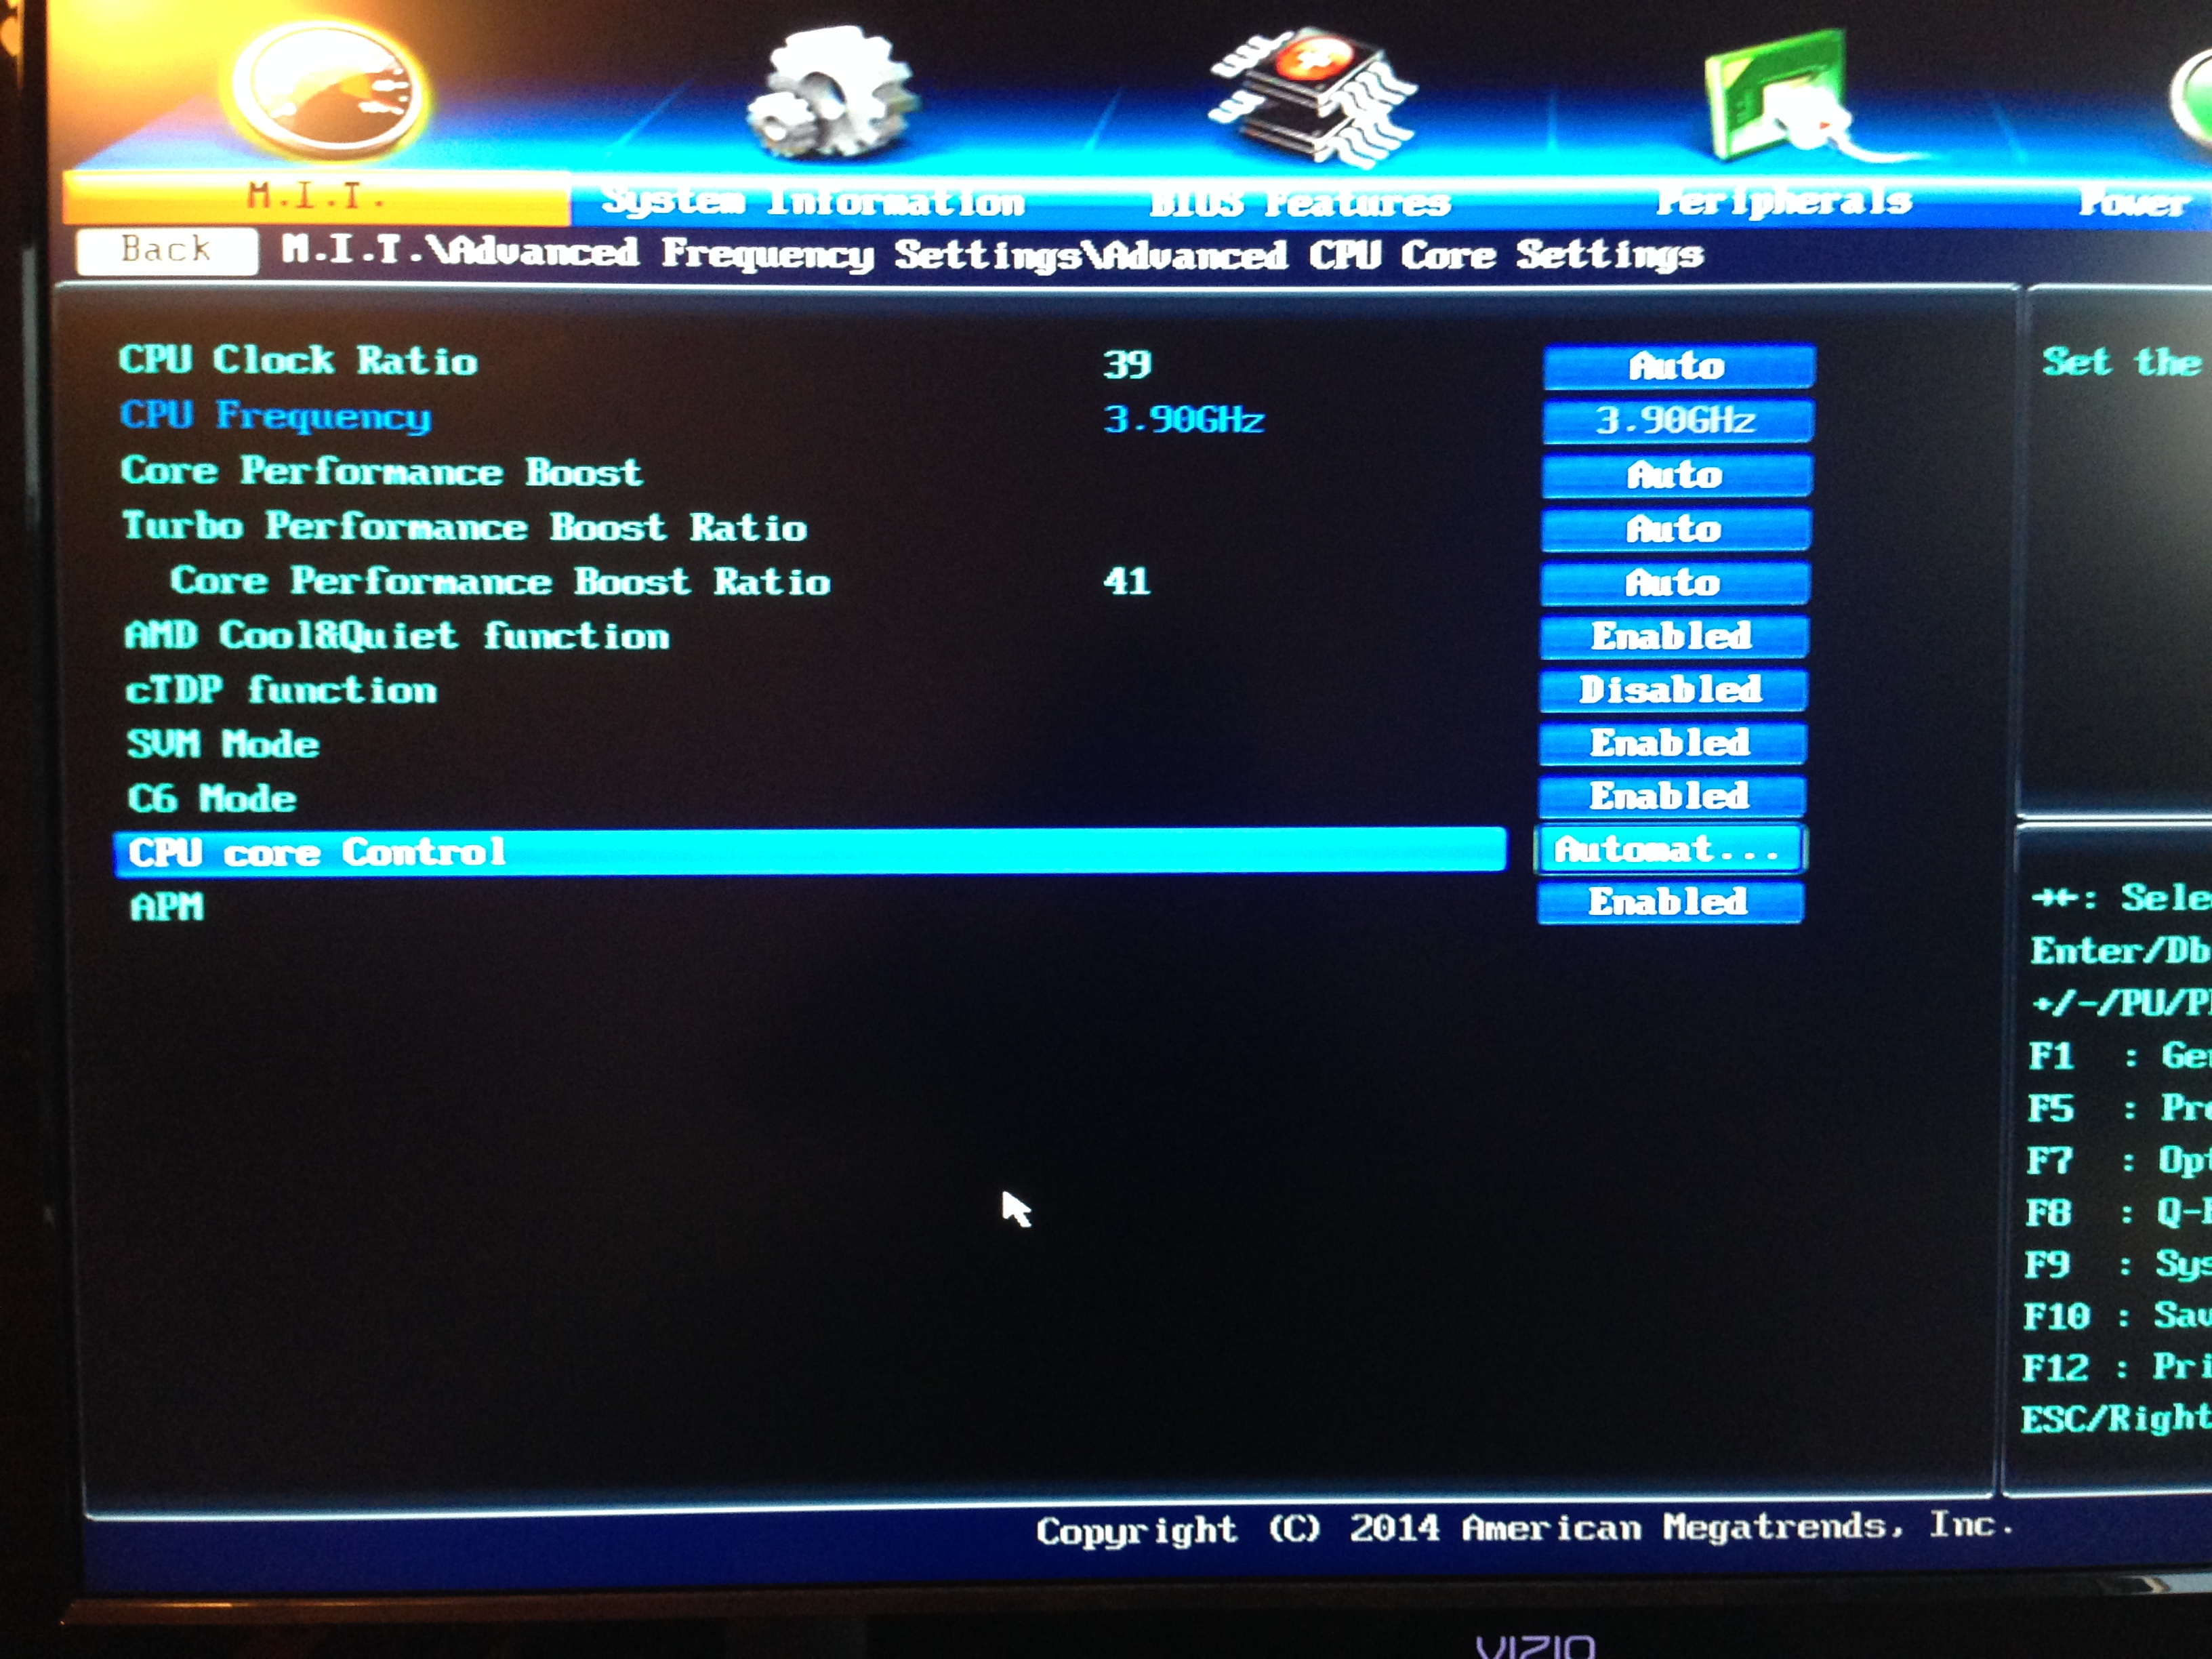 Some gigabyte bios confusion - CPUs, Motherboards, and